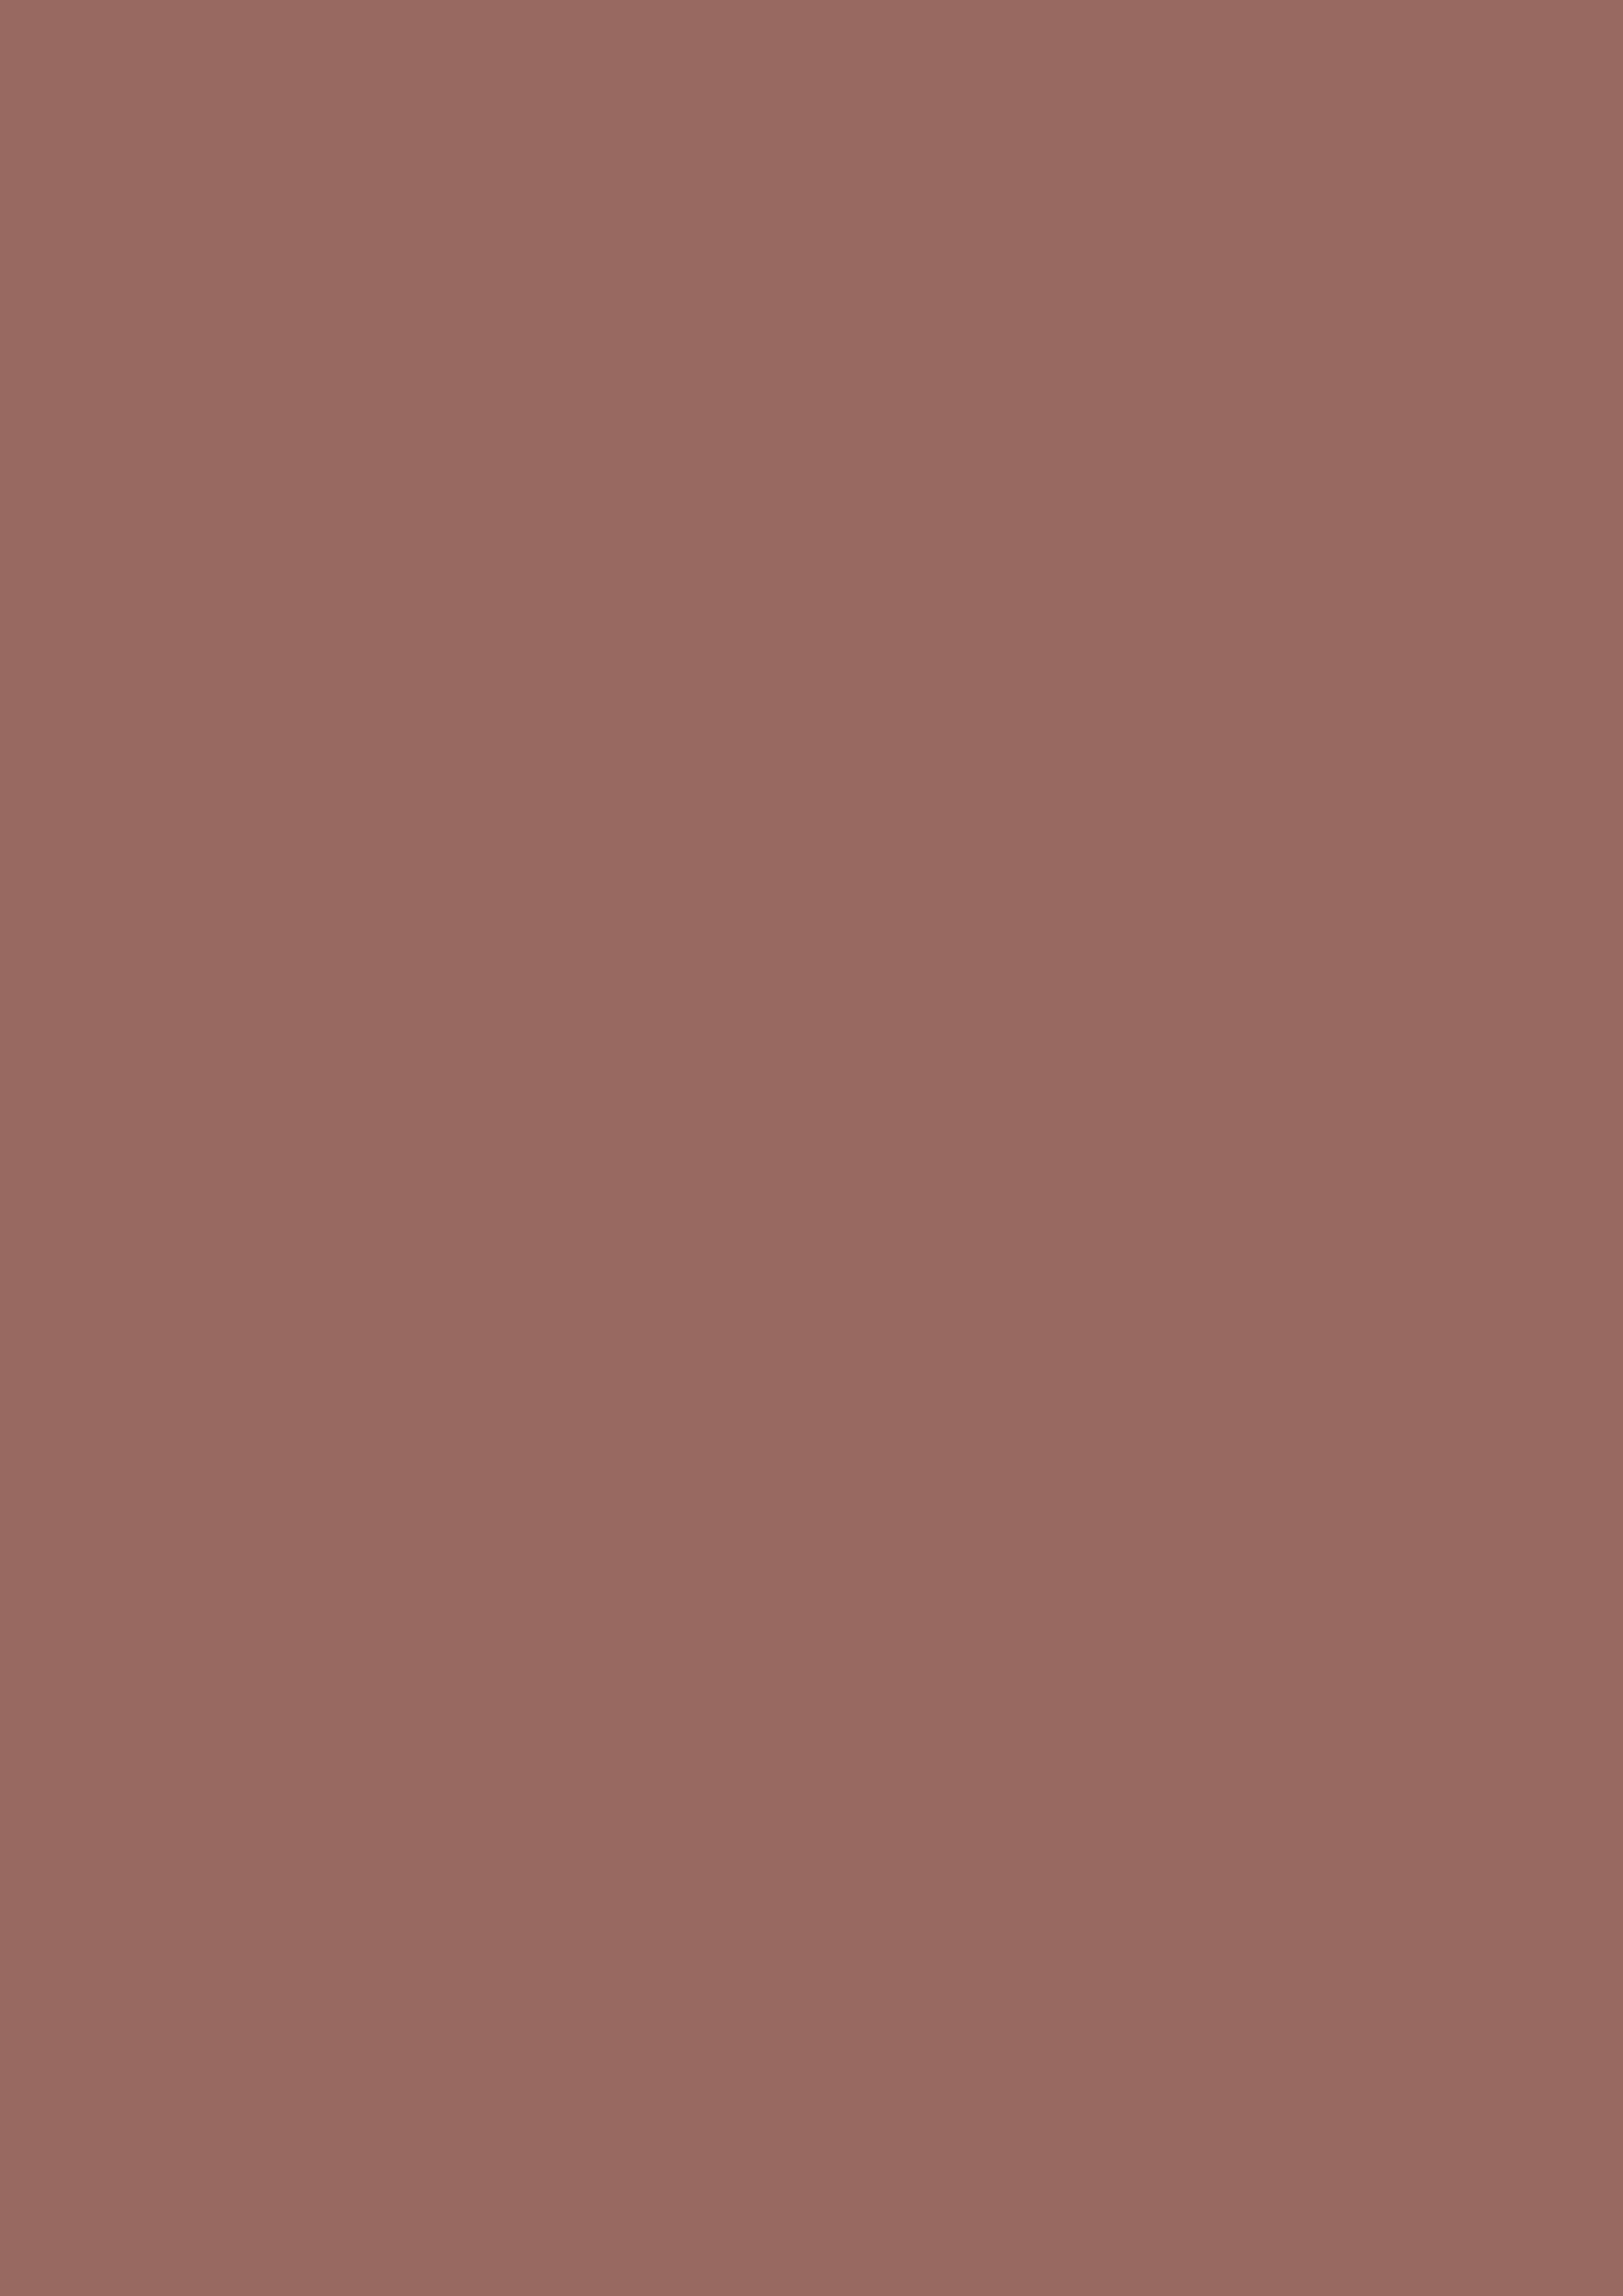 2480x3508 Dark Chestnut Solid Color Background